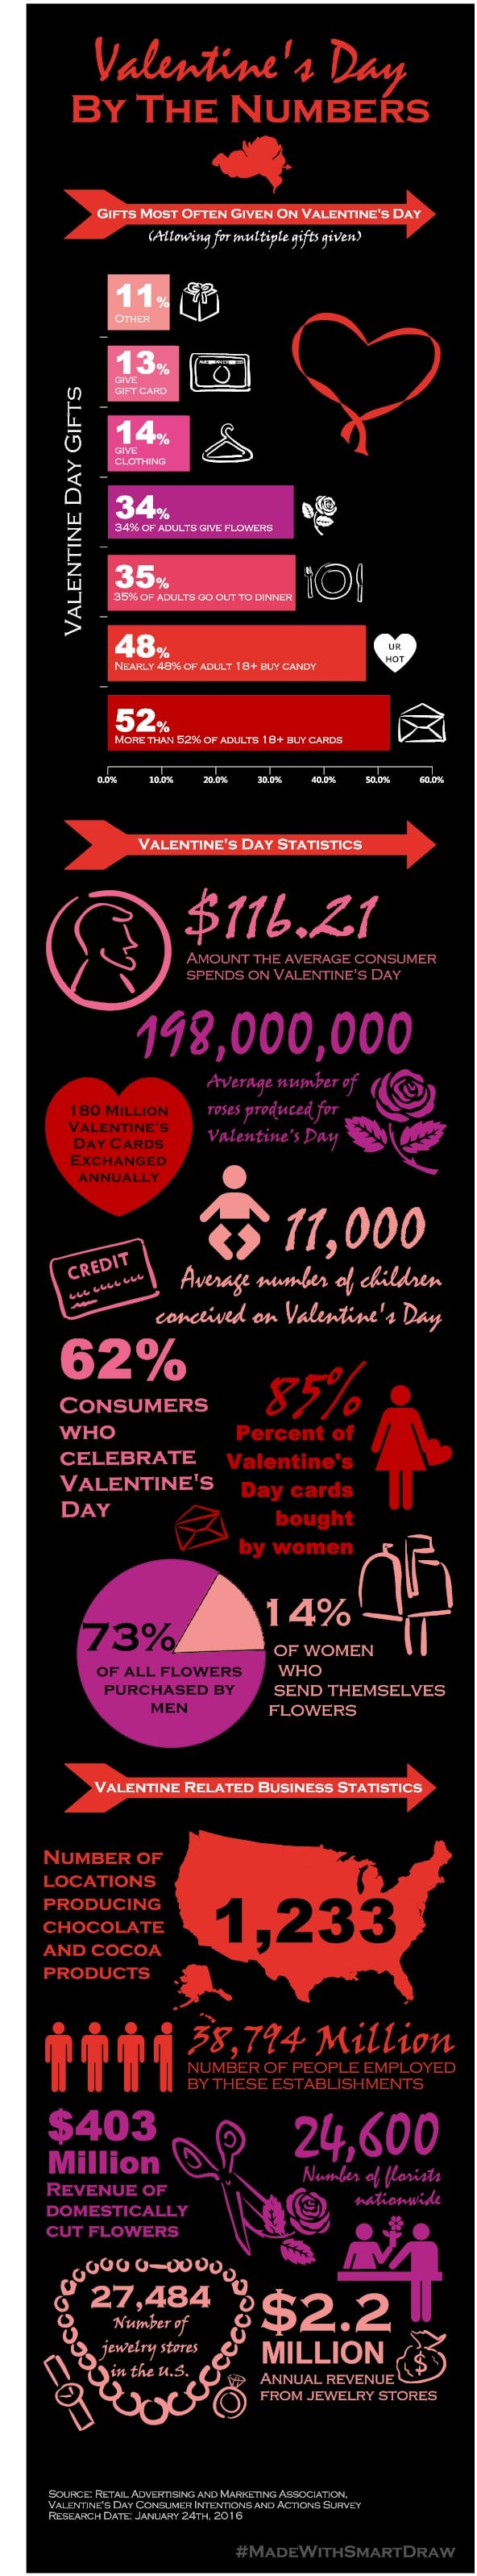 Valentines_Day_By_The_Numbers